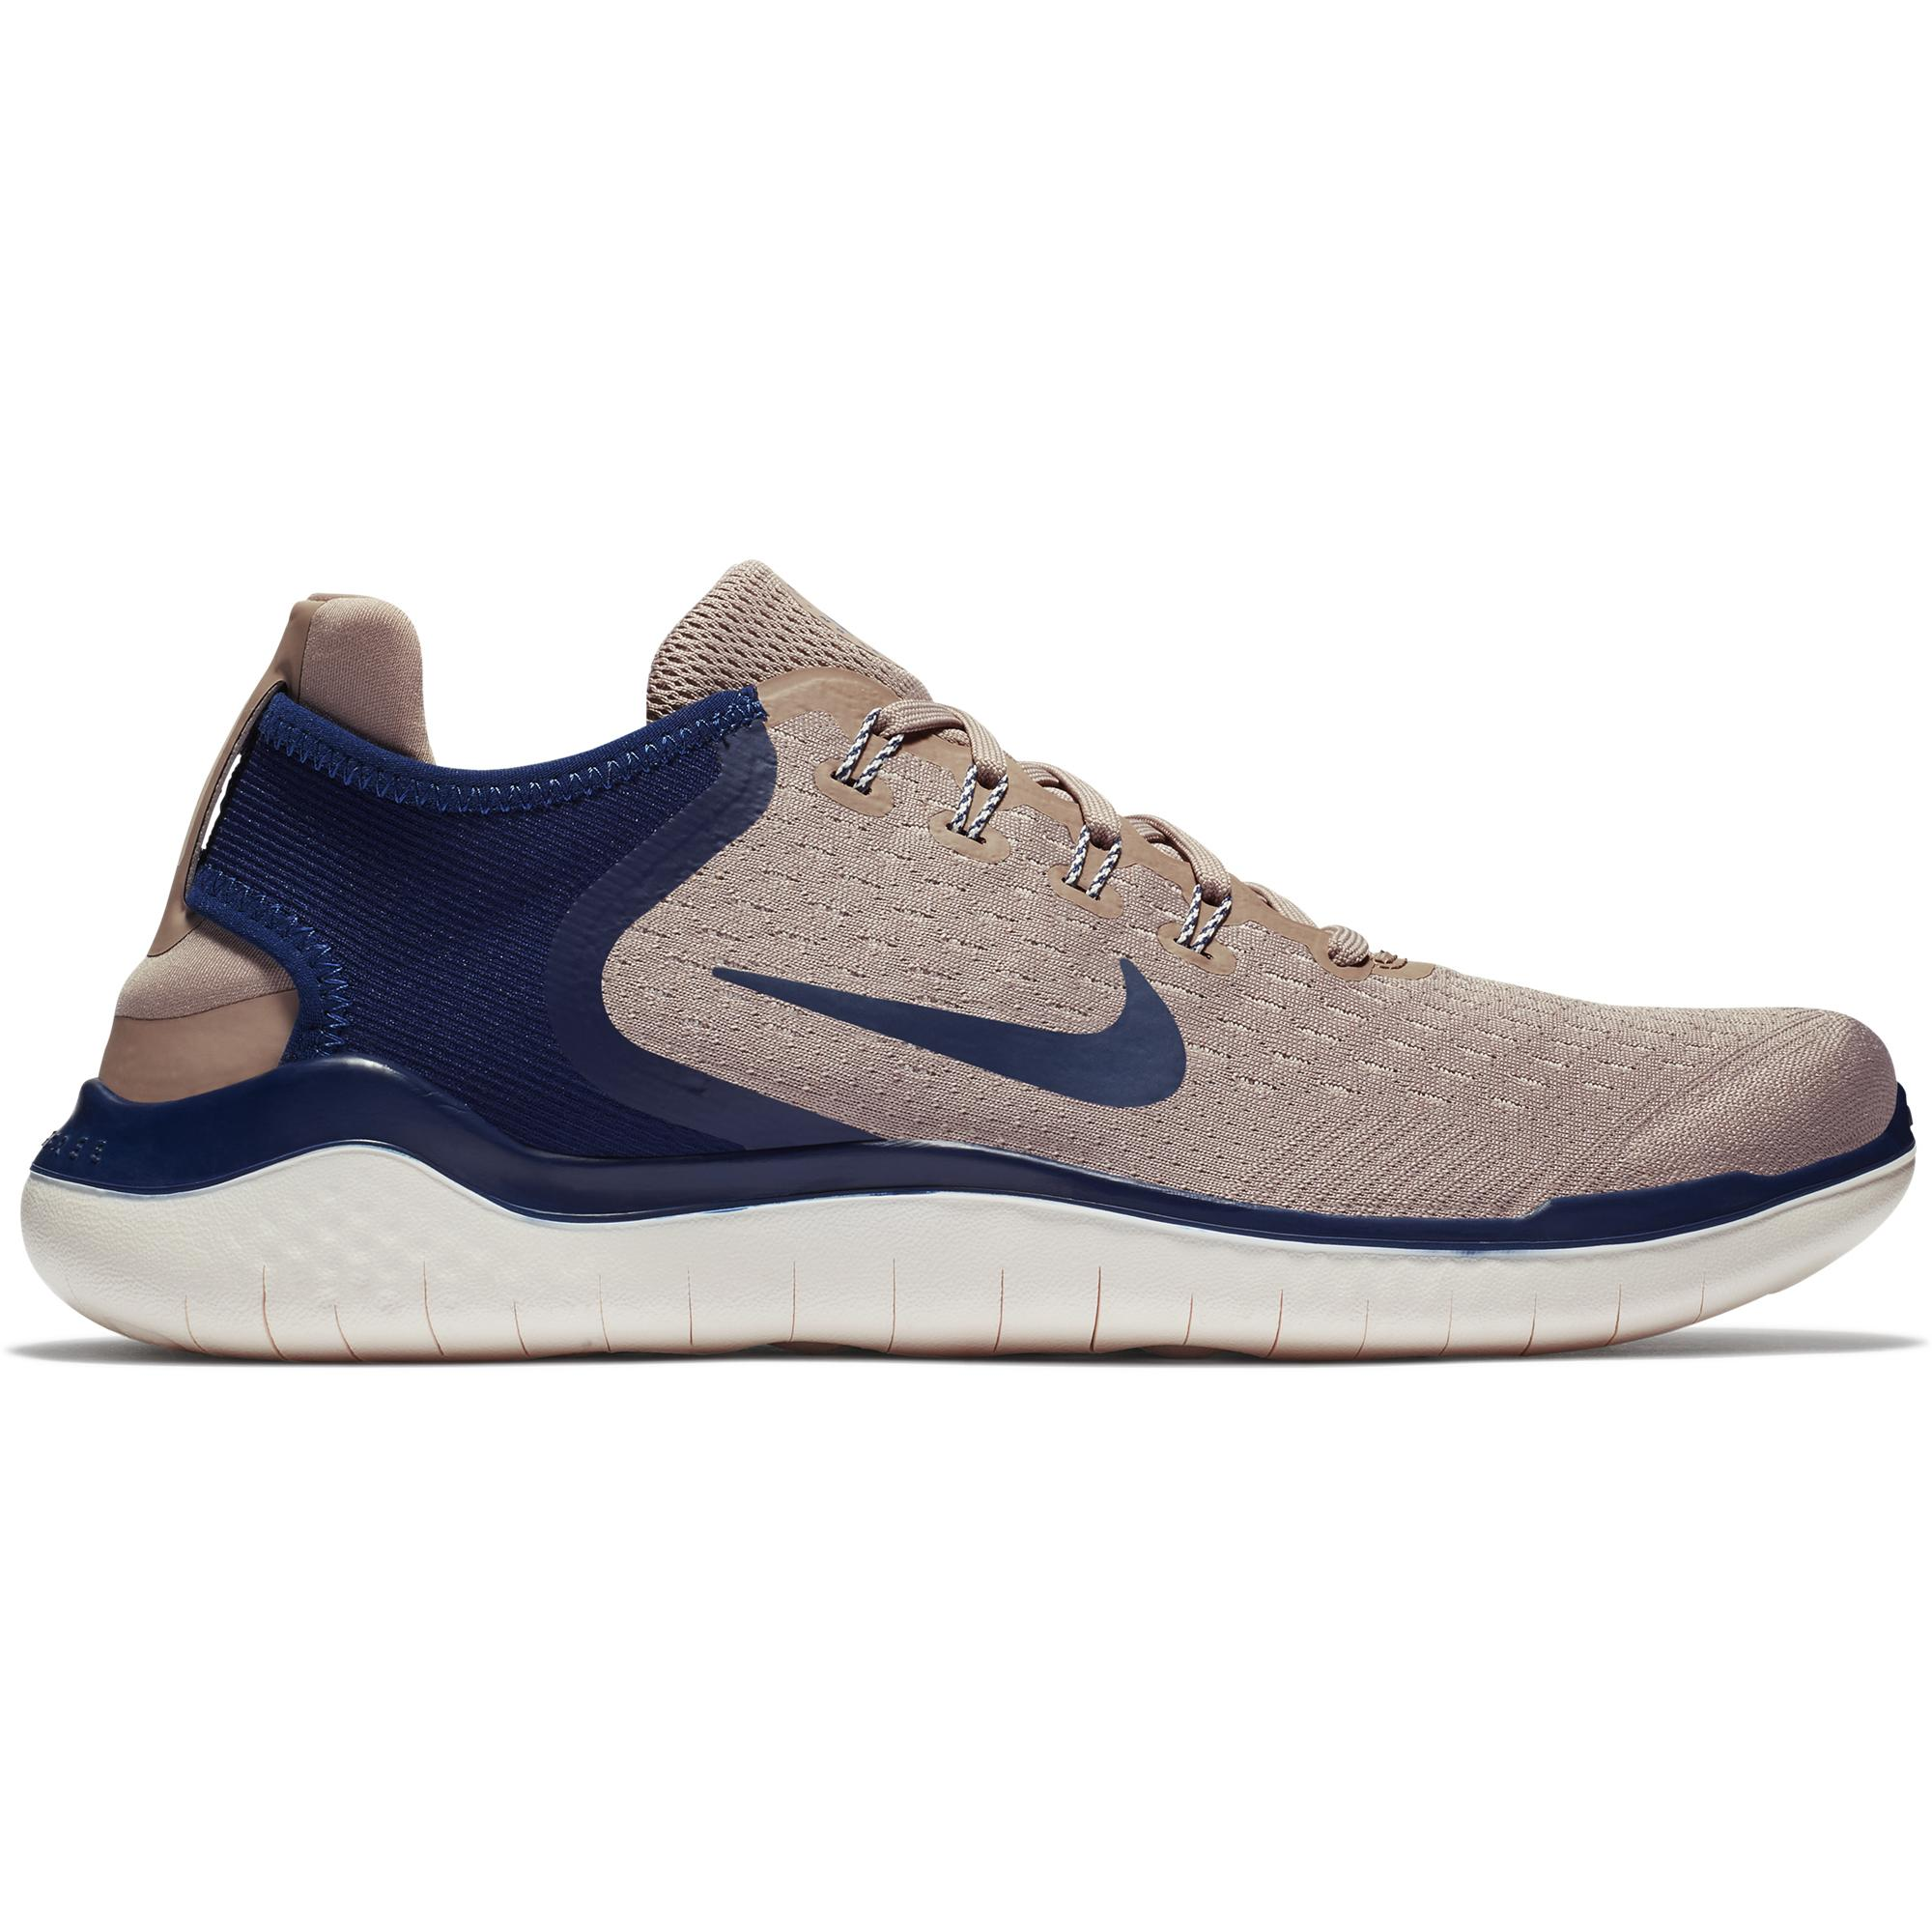 76eb356dd52cb Nike Shoes Free Rn 2018 Diffused Taupe blue Void-guava Ice ...